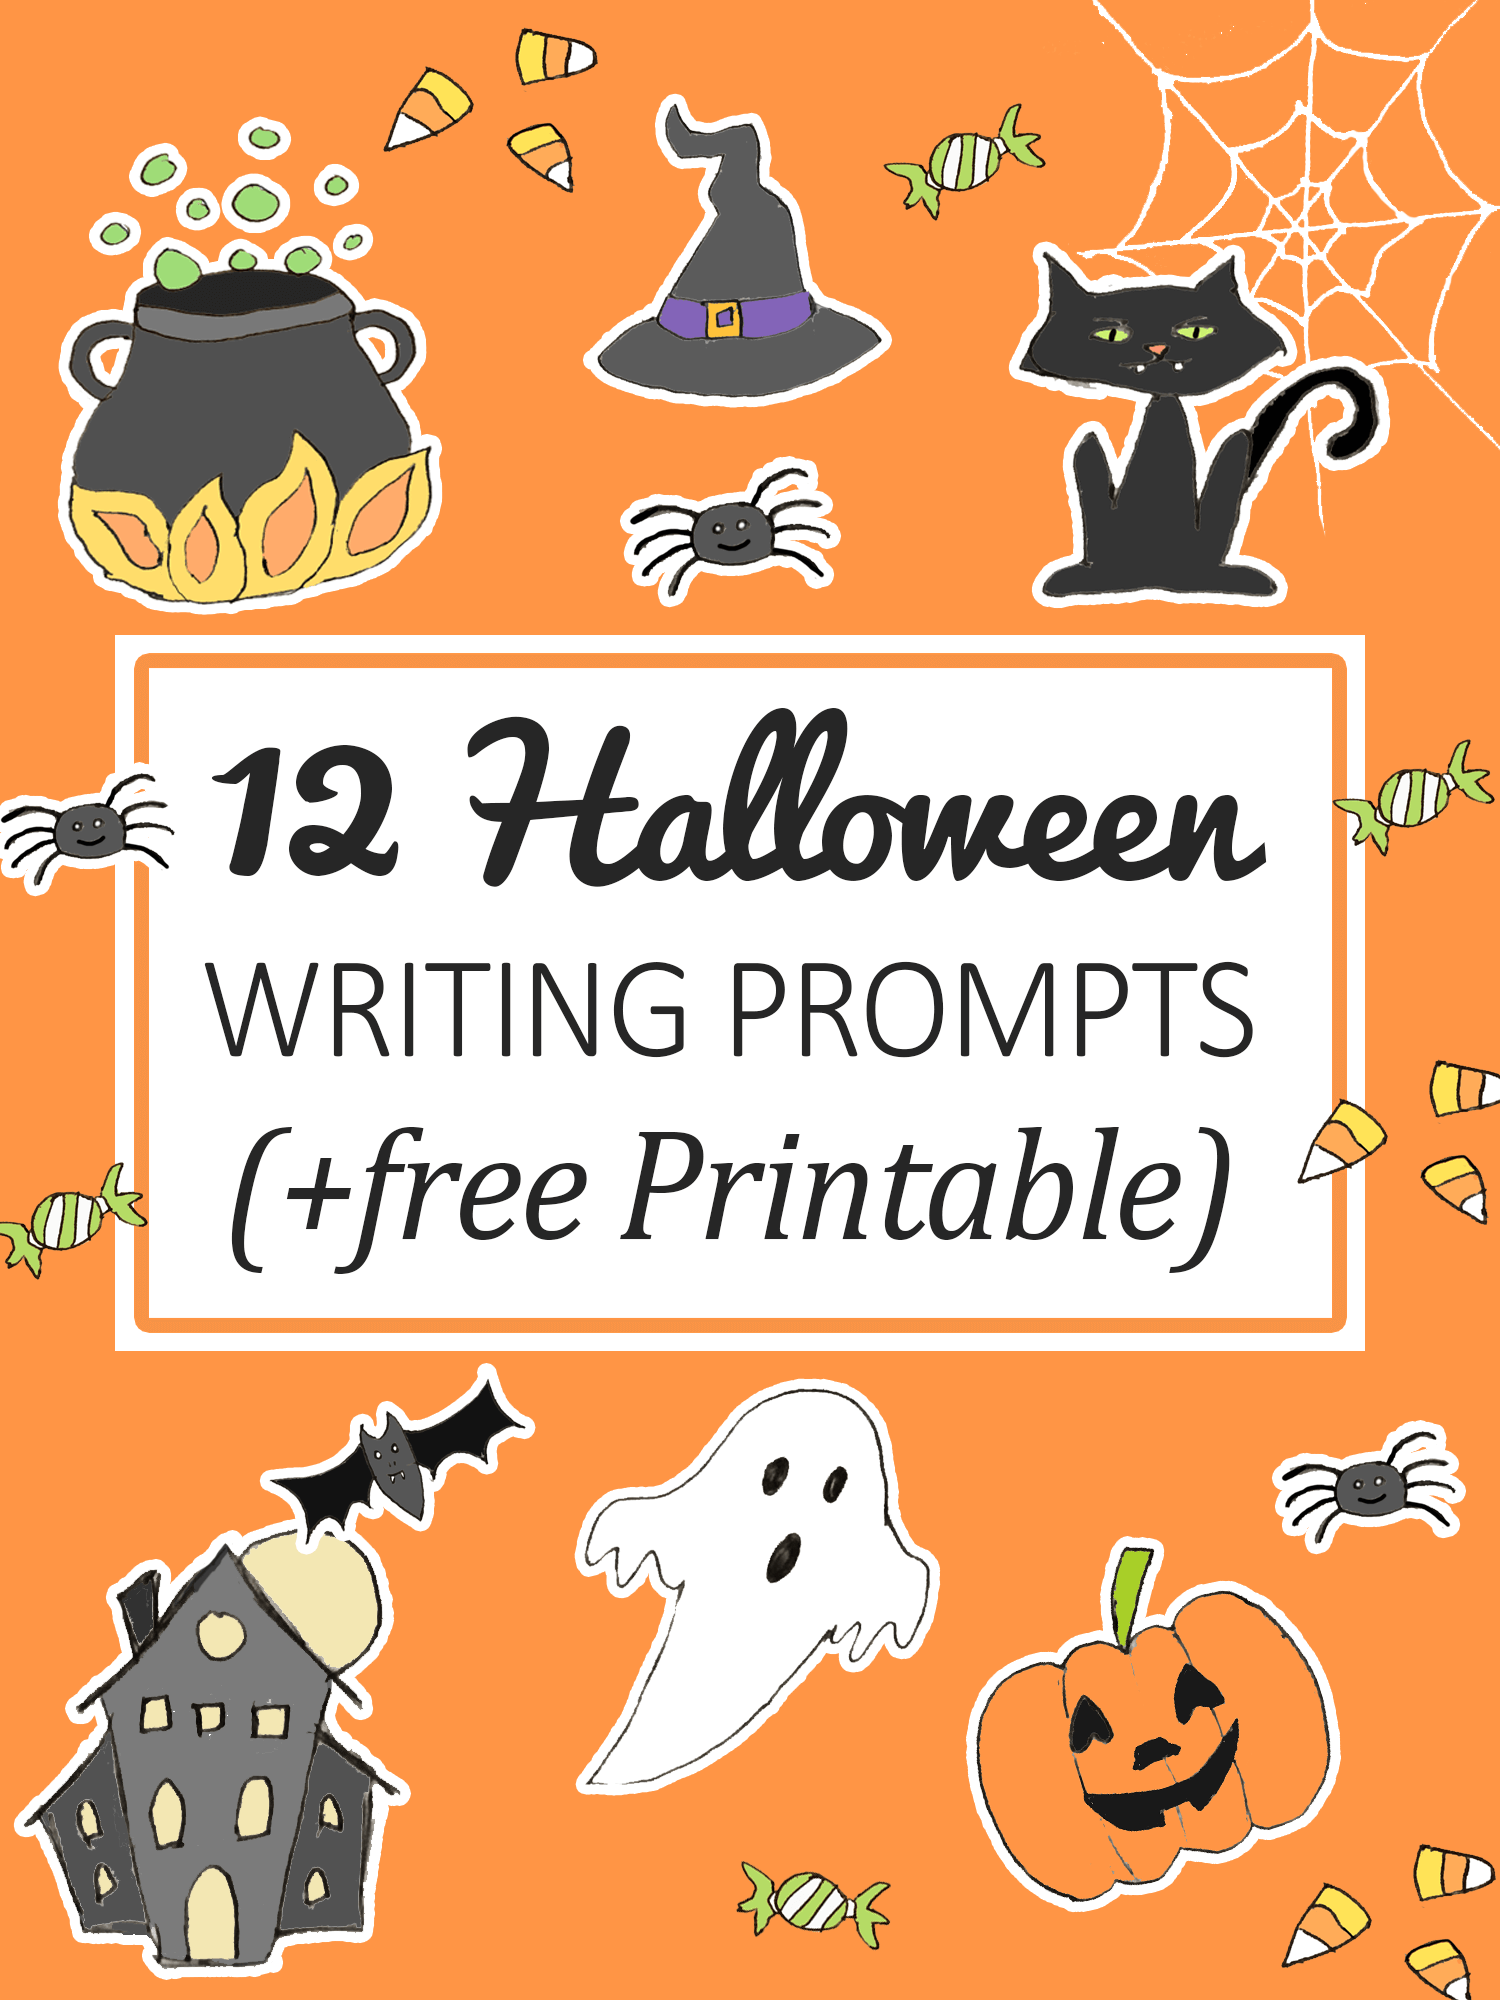 12 Halloween Writing Prompts for kids (+ Printable)